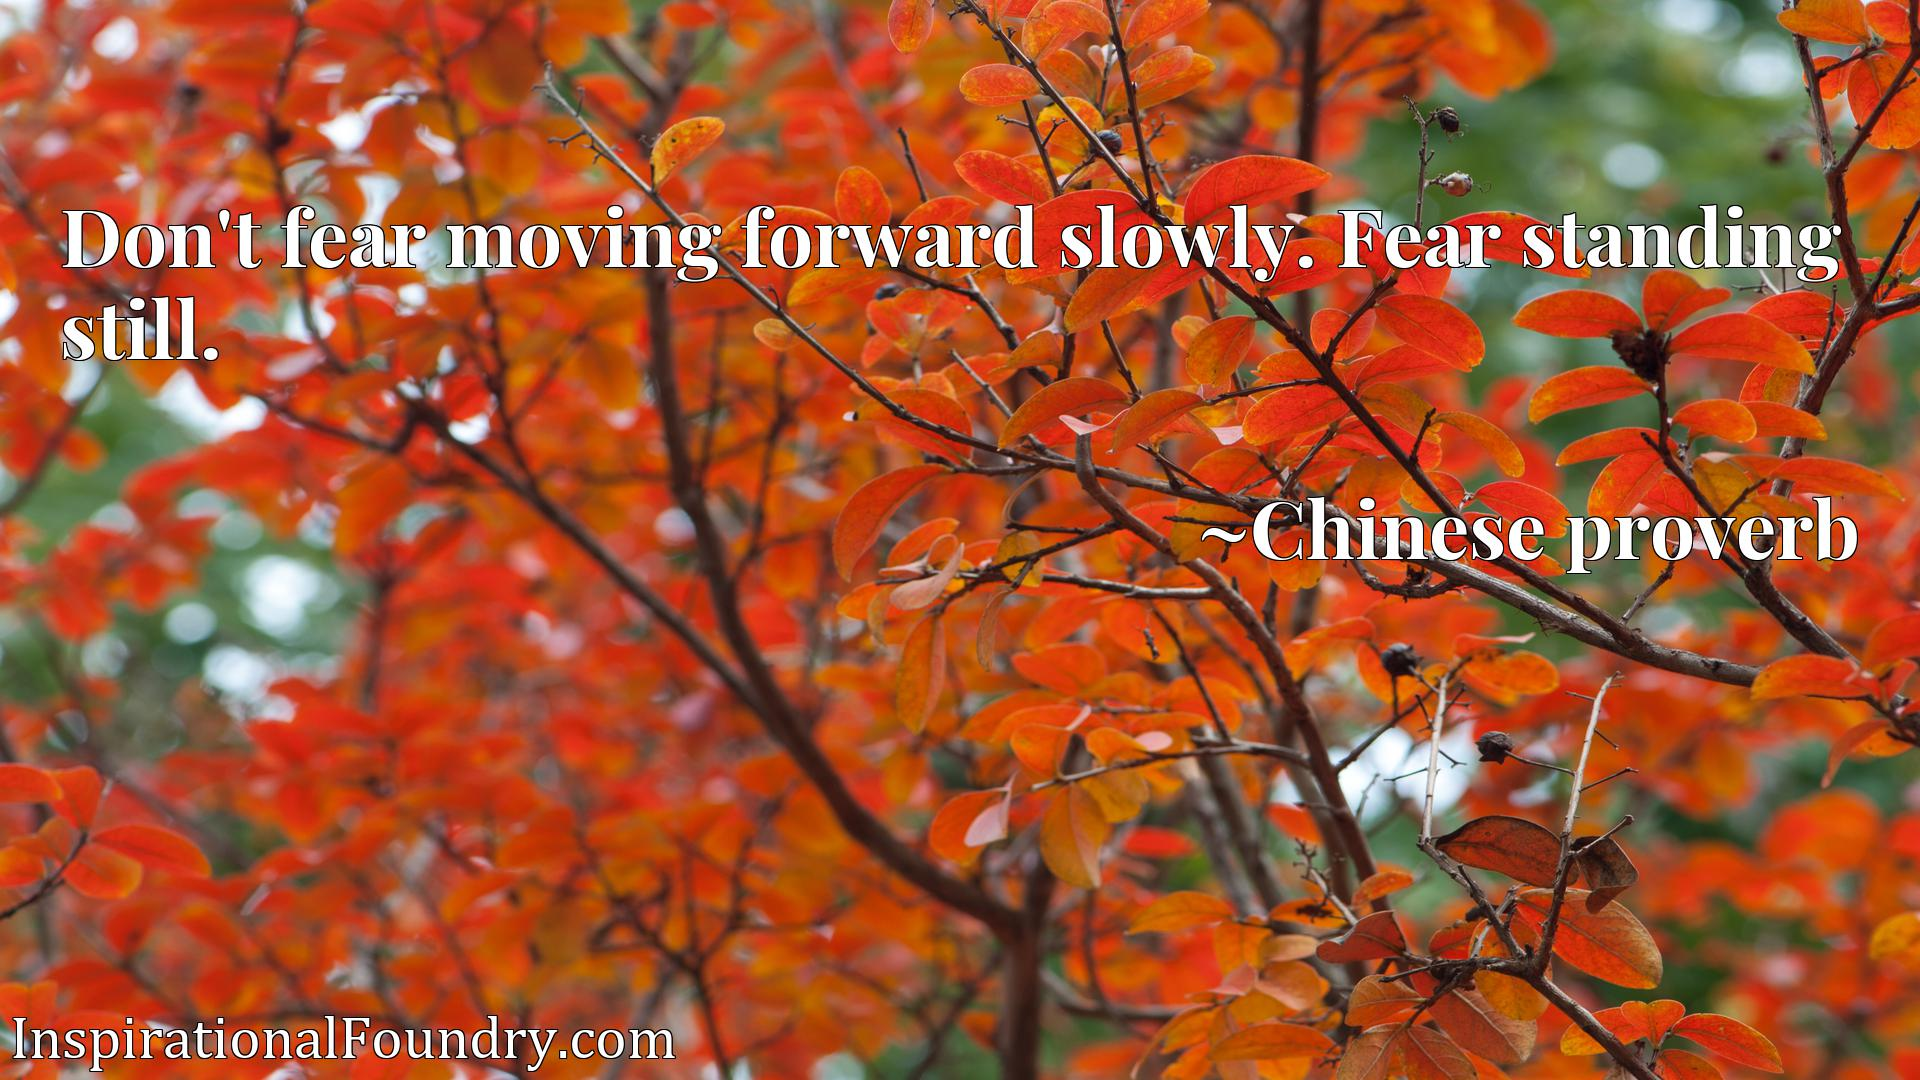 Don't fear moving forward slowly. Fear standing still.